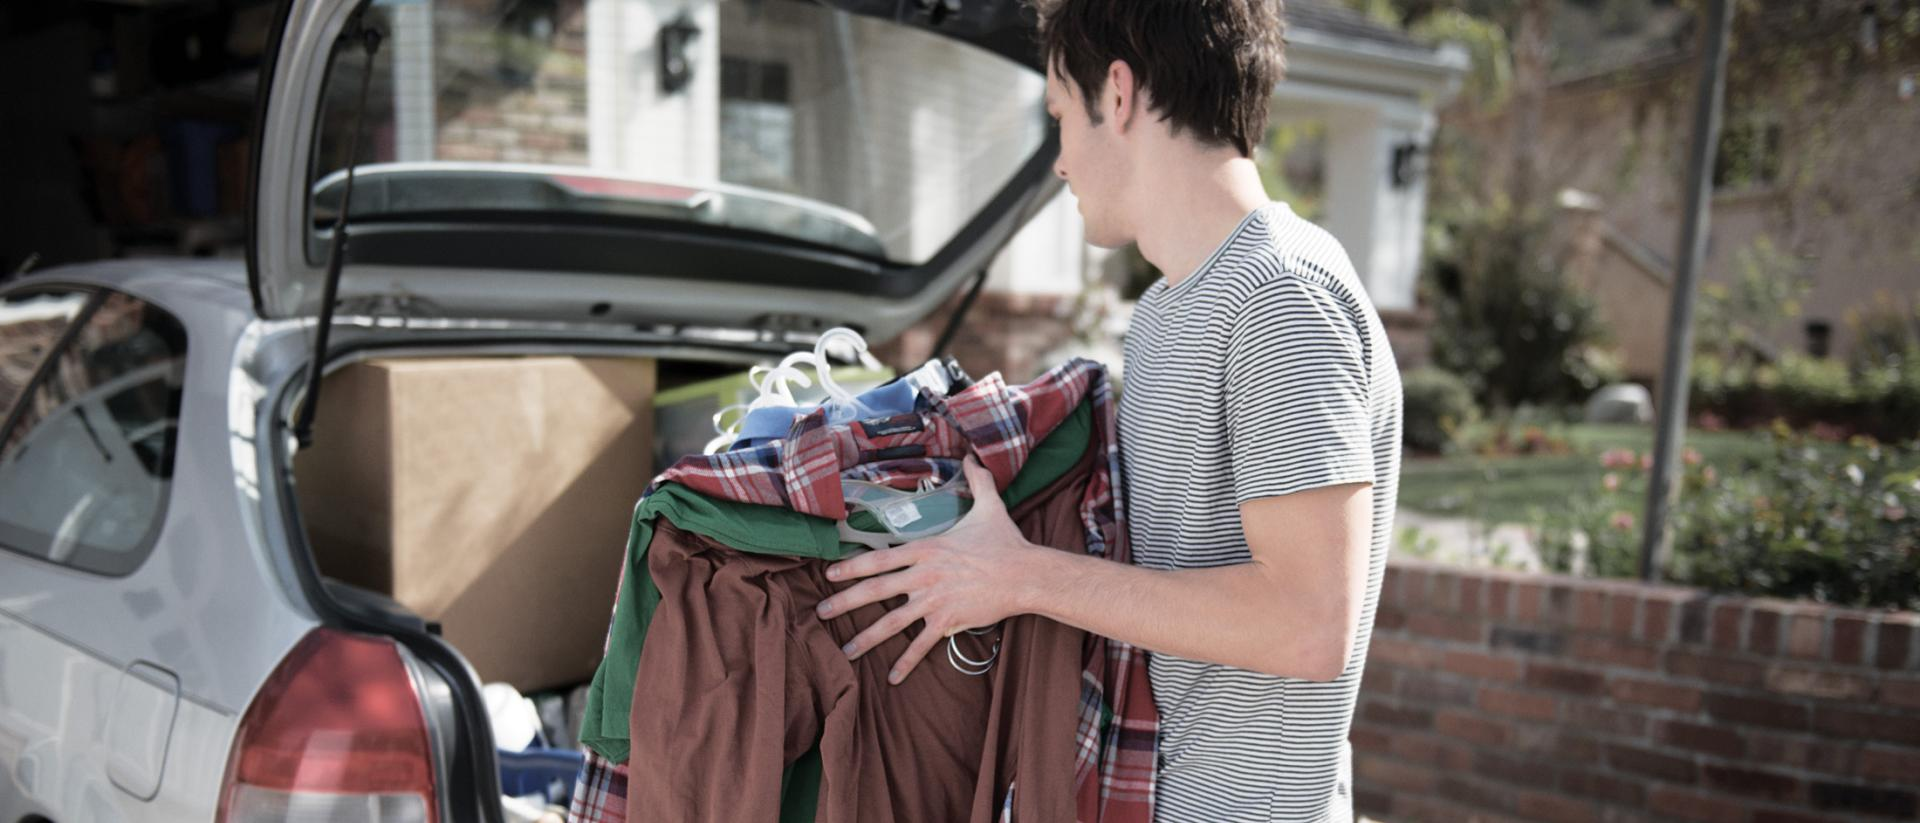 Man packing car to move